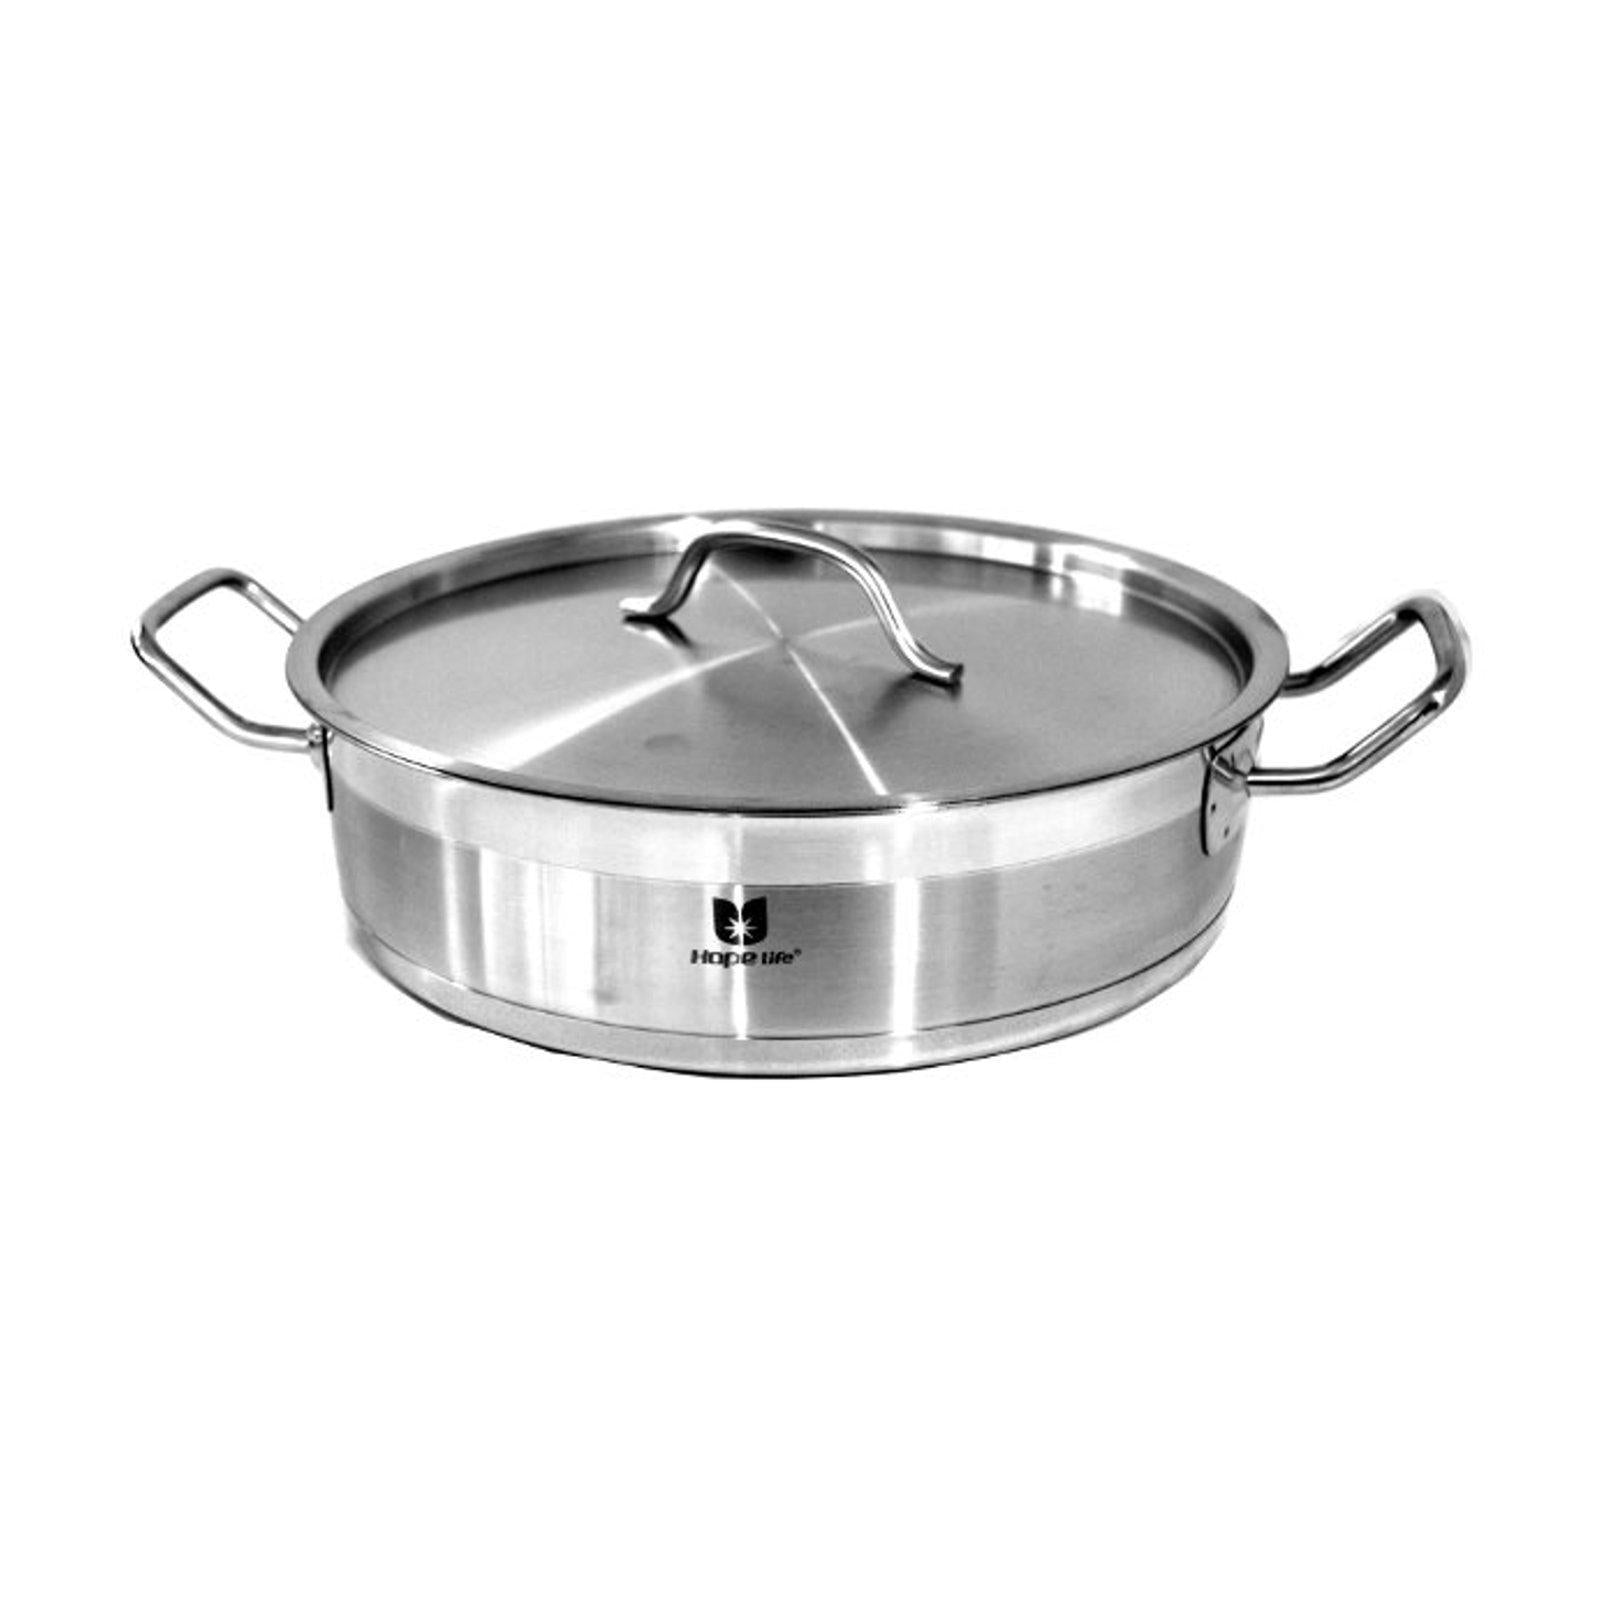 28 Cm Stainless Steel Induction Stew Pot-Stainless Steel Cookware-Chef's Quality Cookware